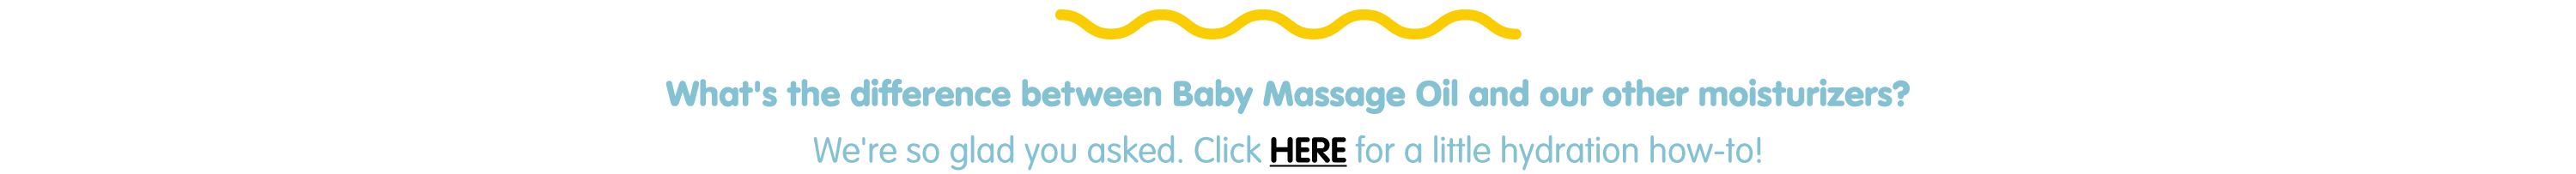 More info about Baby Massage Oil